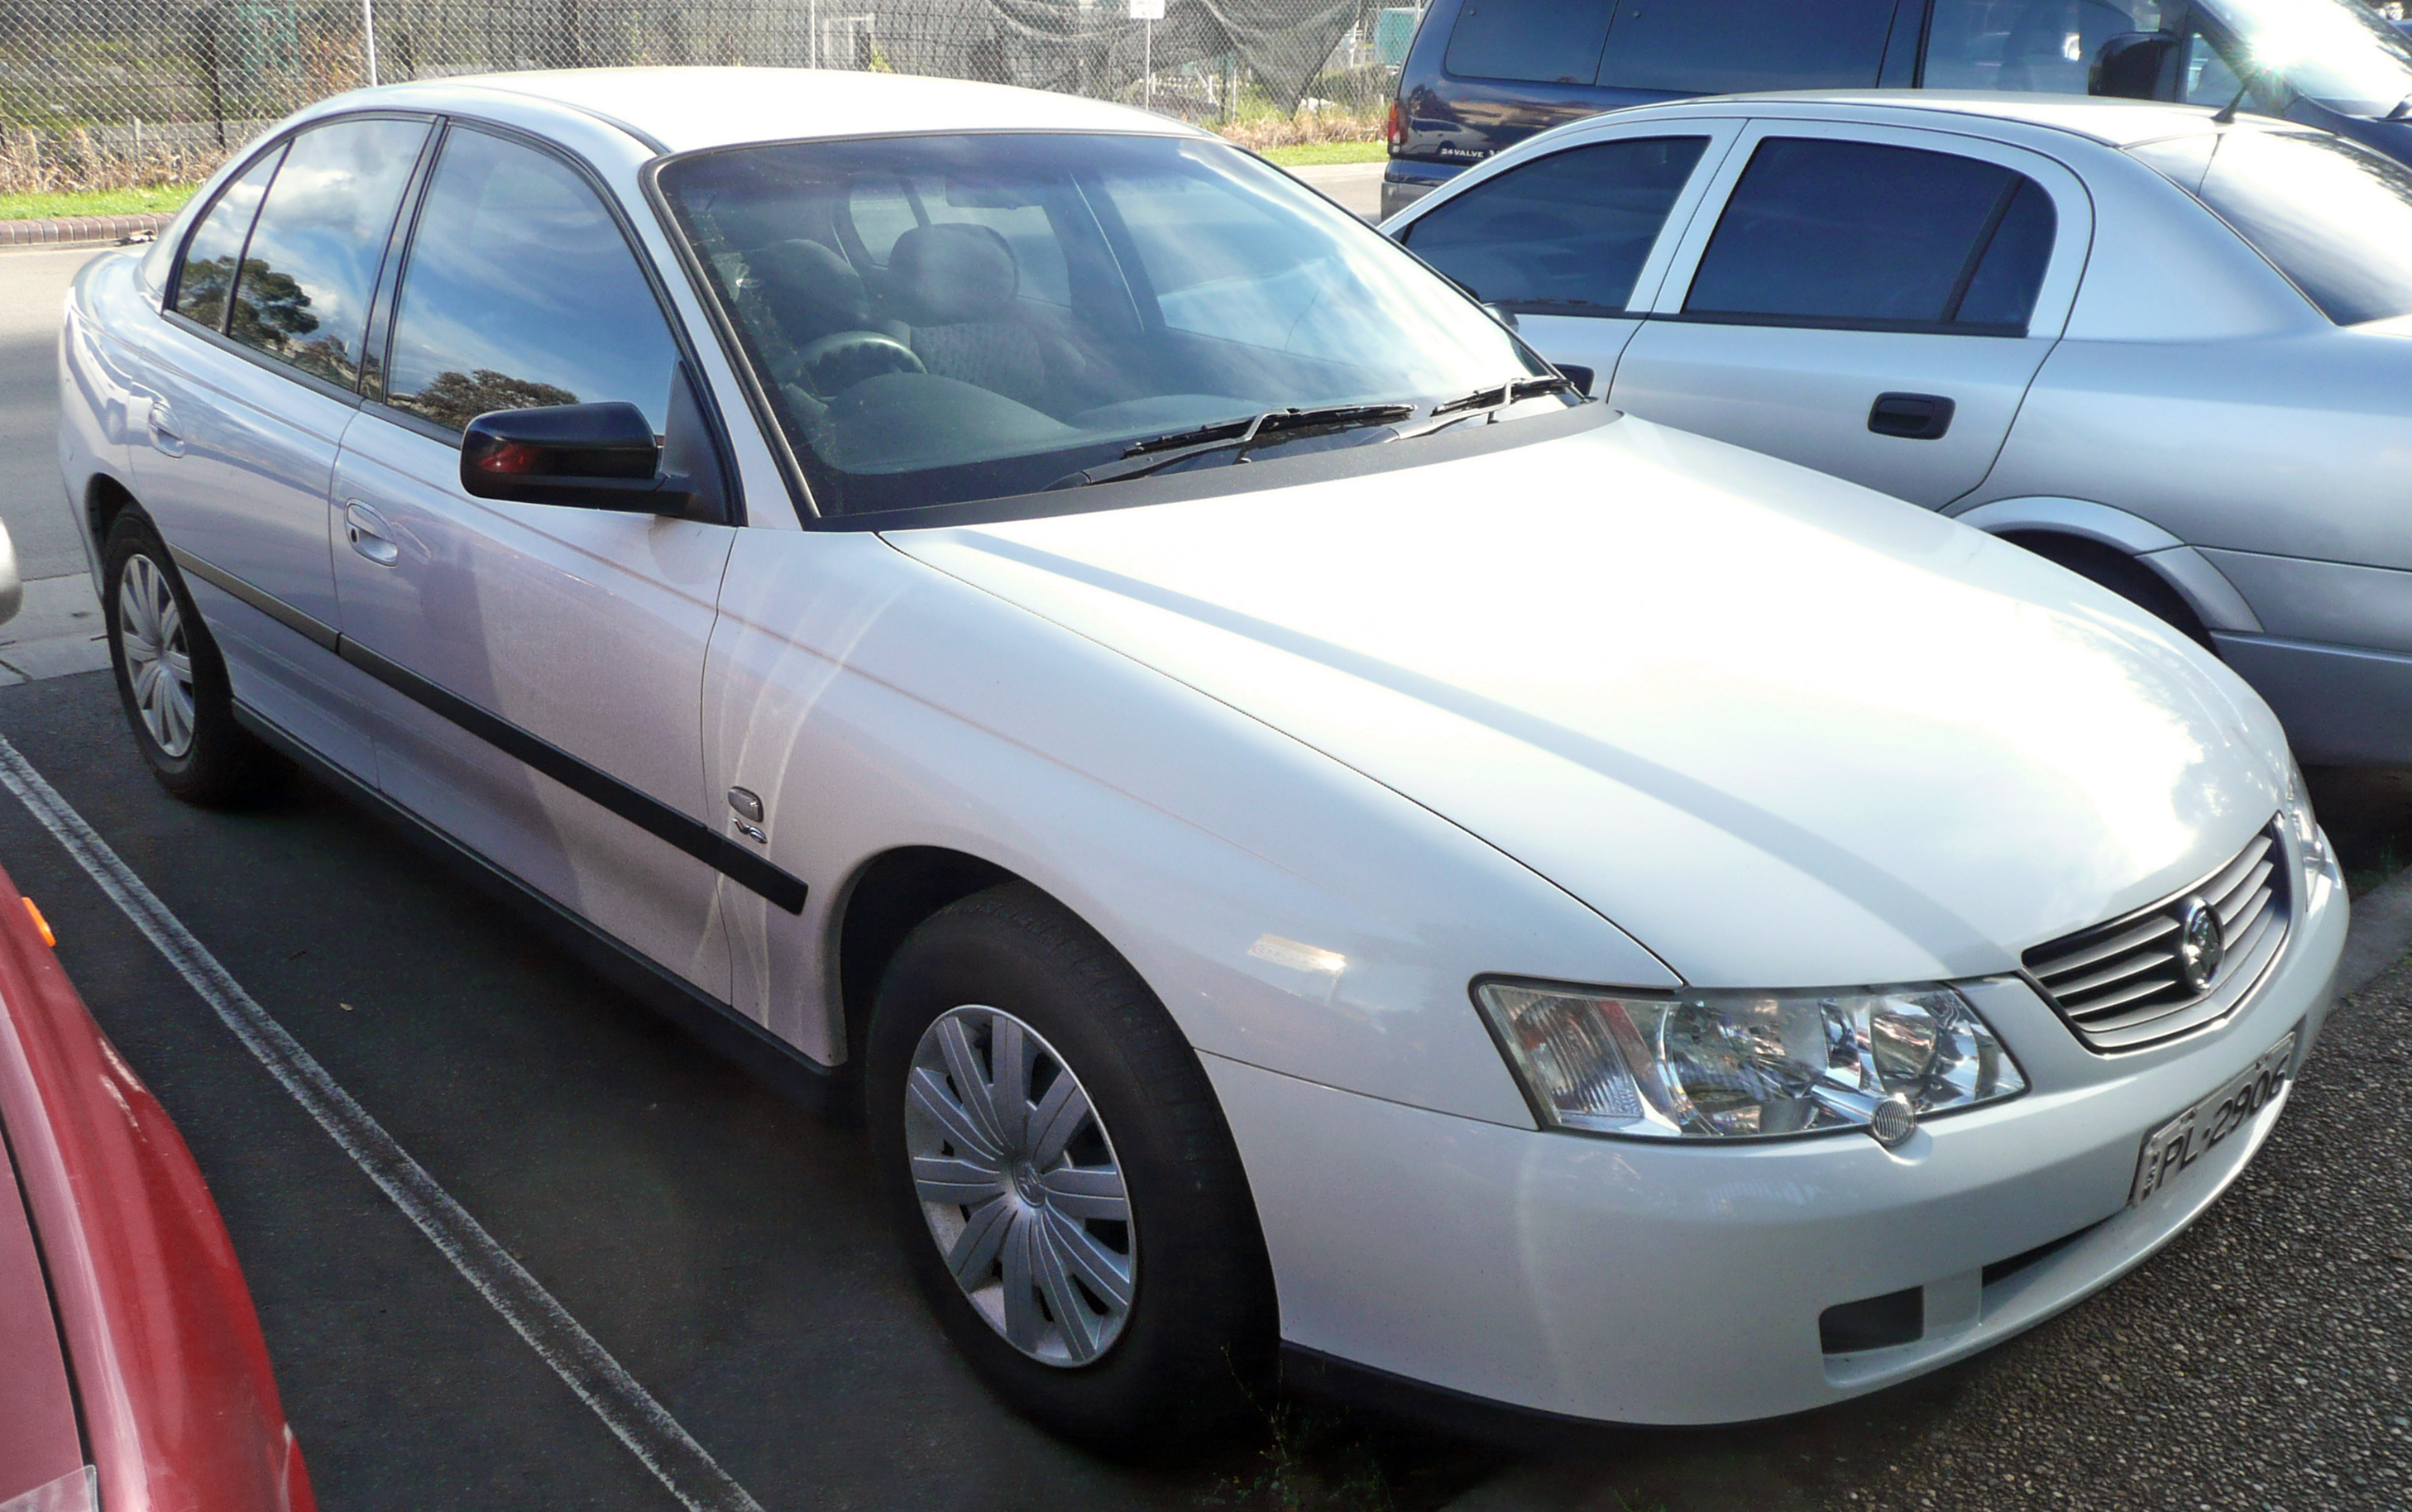 File2002 2003 holden vy commodore executive sedan 02g file2002 2003 holden vy commodore executive sedan 02g vanachro Gallery